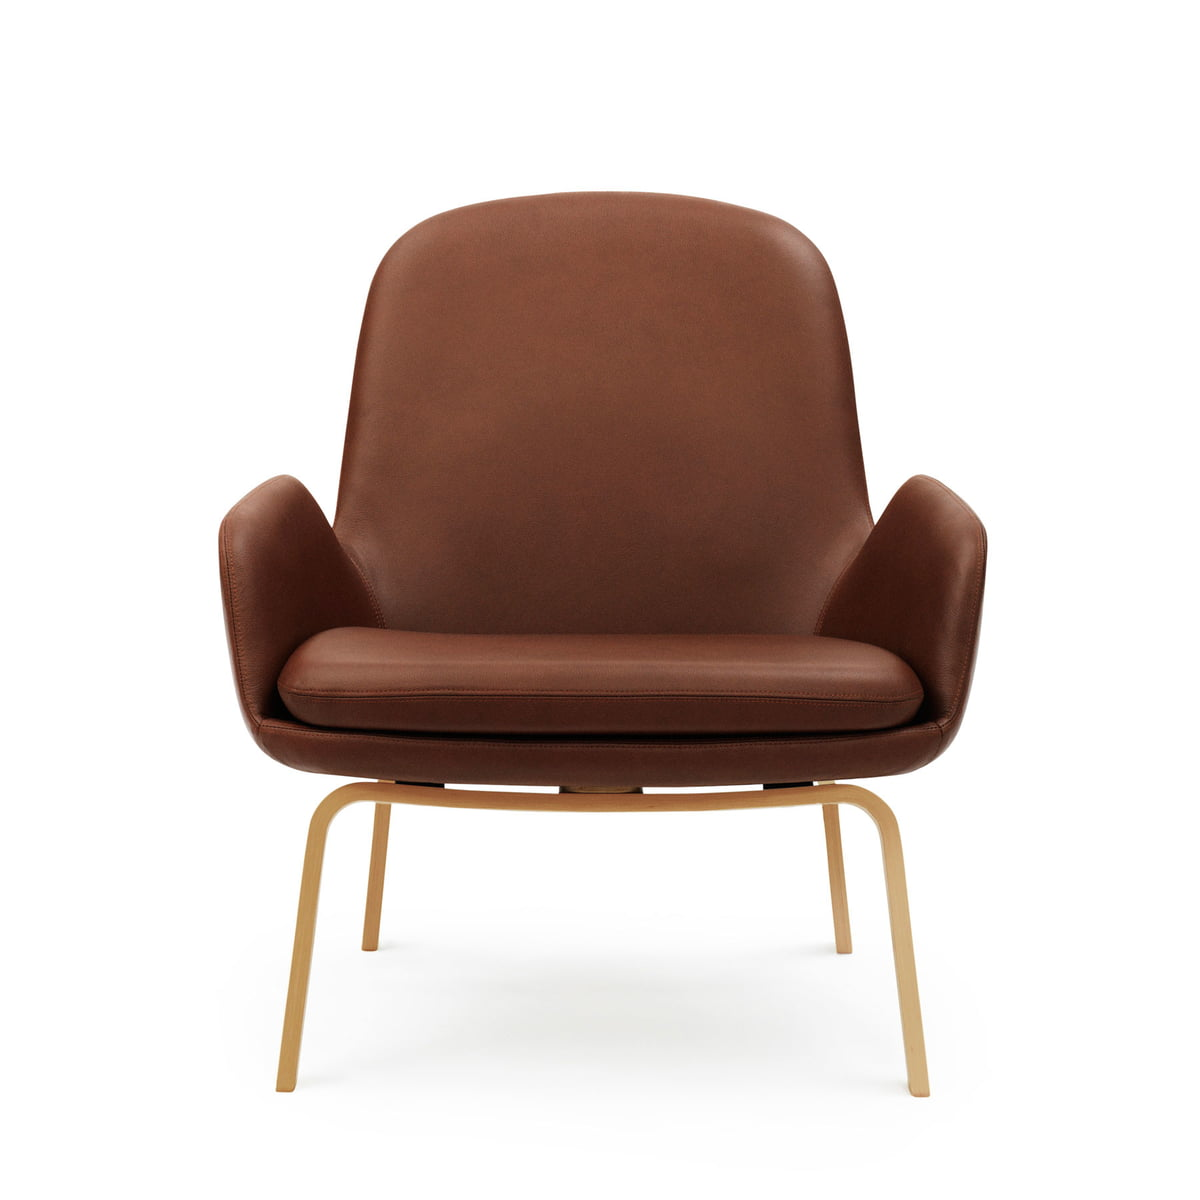 normann copenhagen sofa era pattern for arm covers the lounge chair from